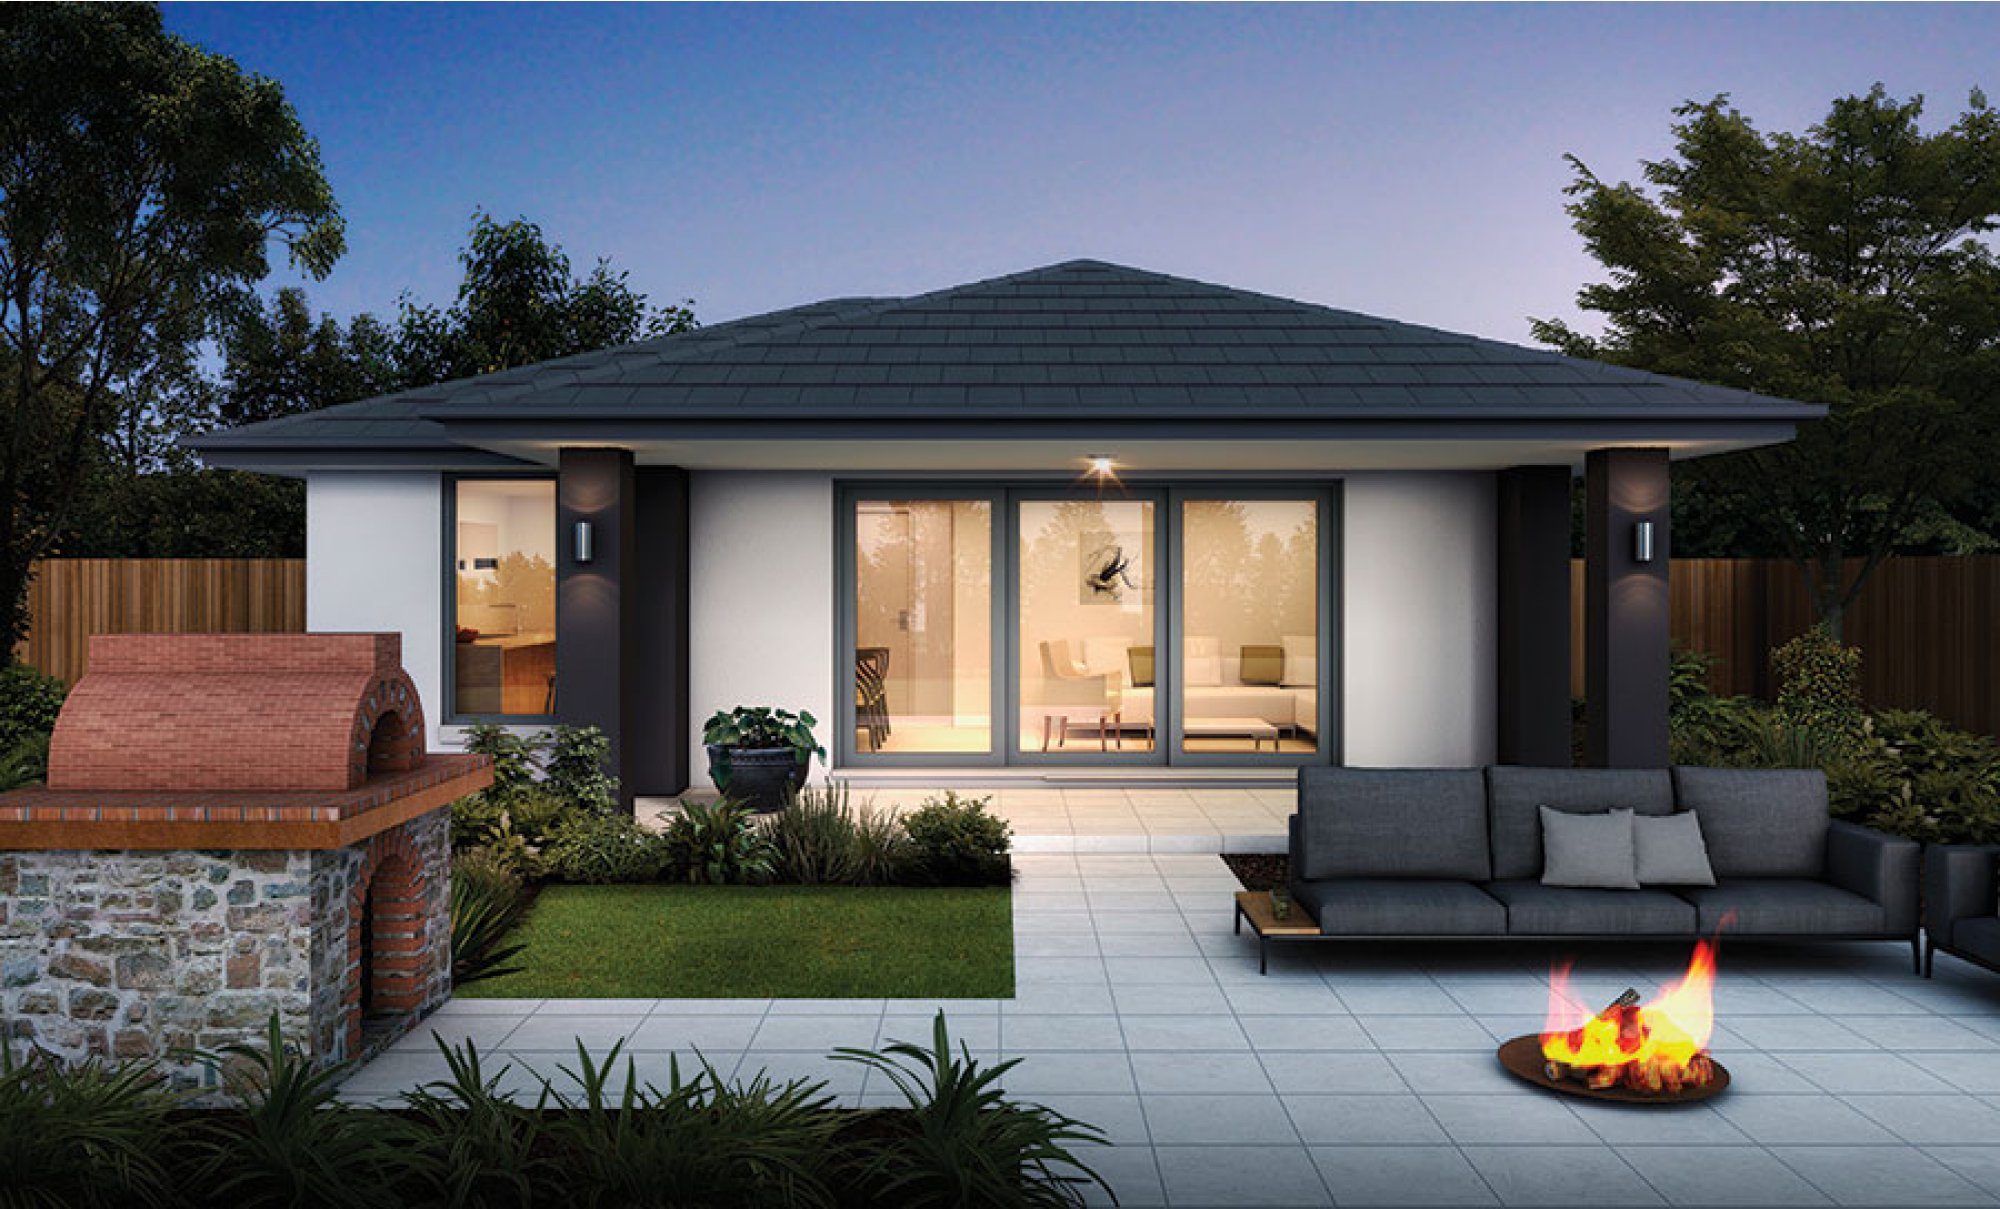 Home Design Ideas Pictures: 60m2 Granny Flat (2 Bedrooms) Home Design NSW